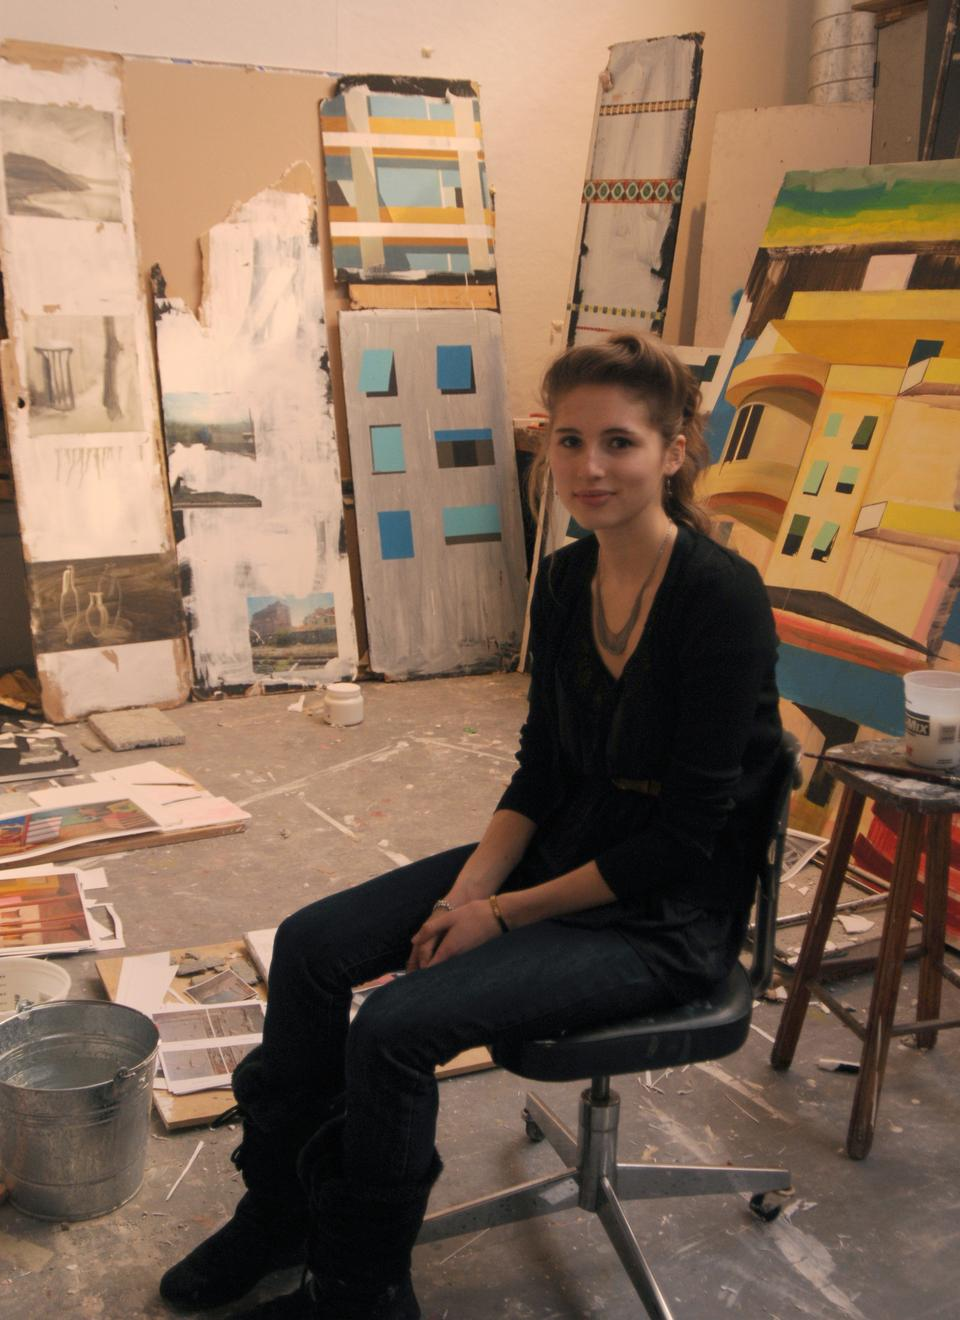 VES concentrator Julia Rooney '11 sits among a small selection of her paintings in her Linden Street studio space.